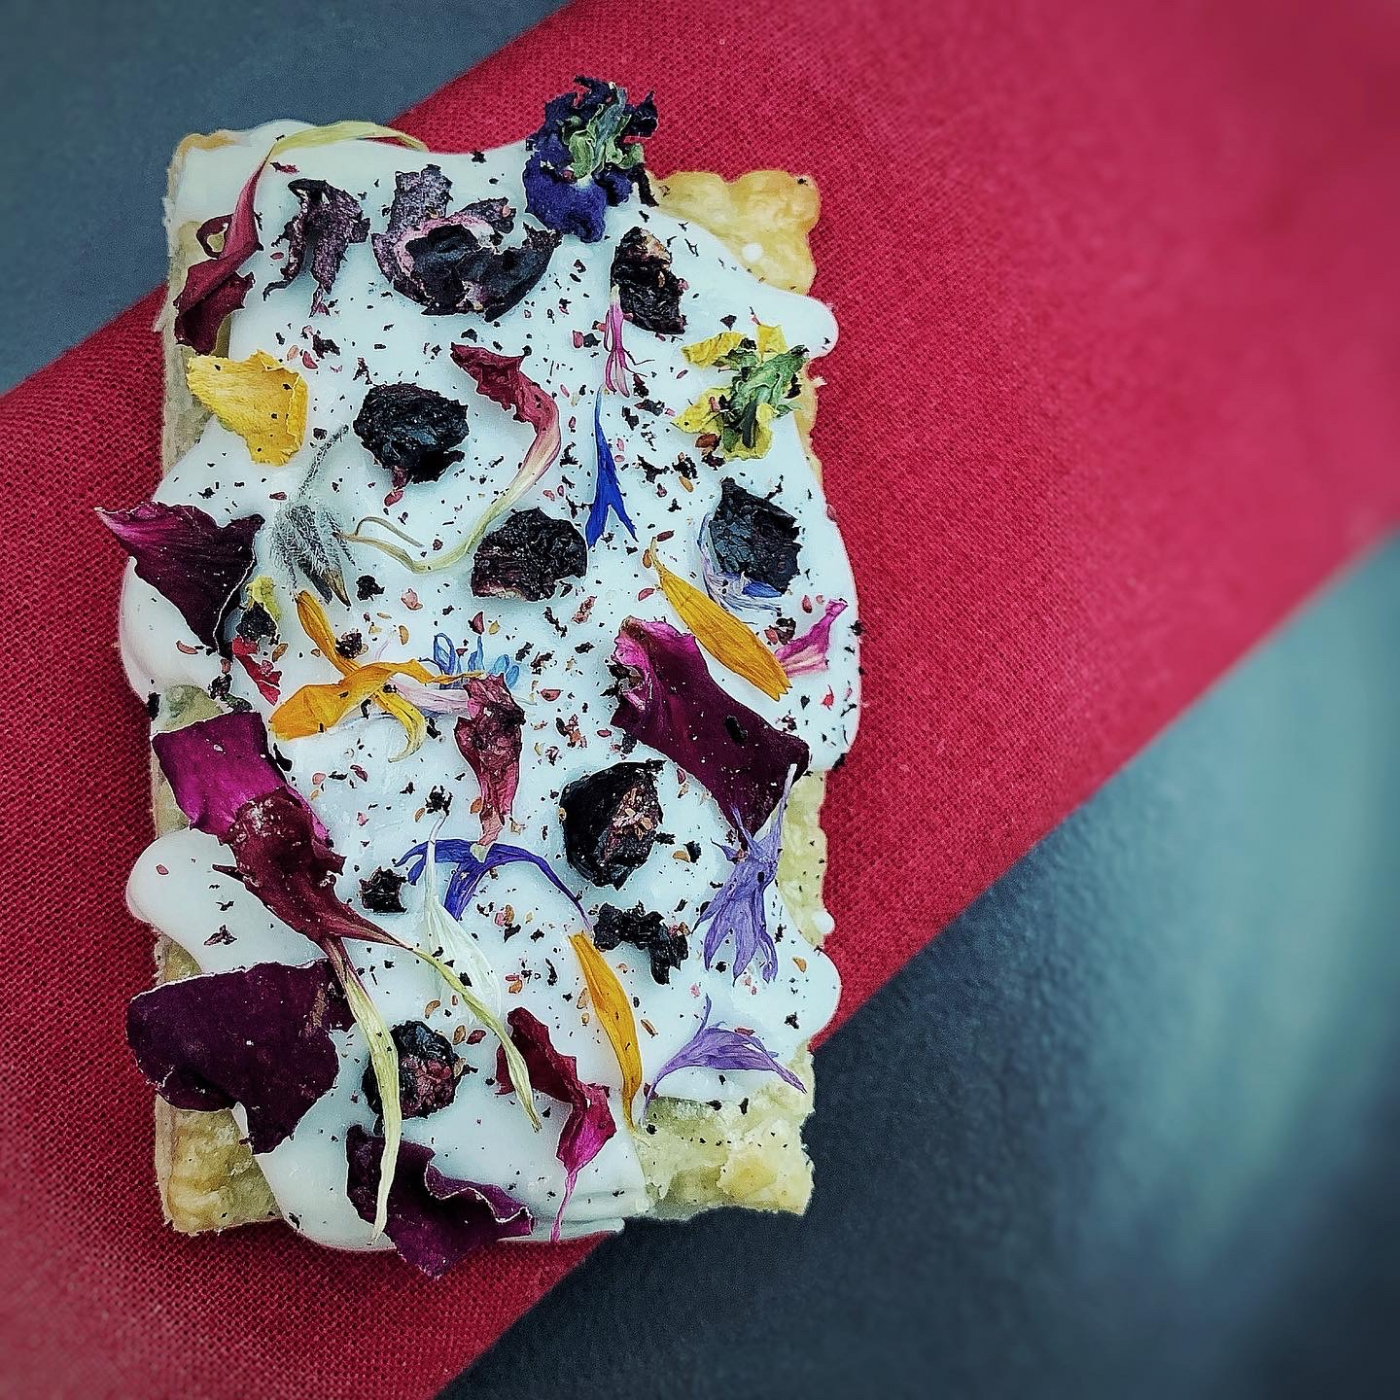 Wildflower pop tart, dried & fermented blueberries